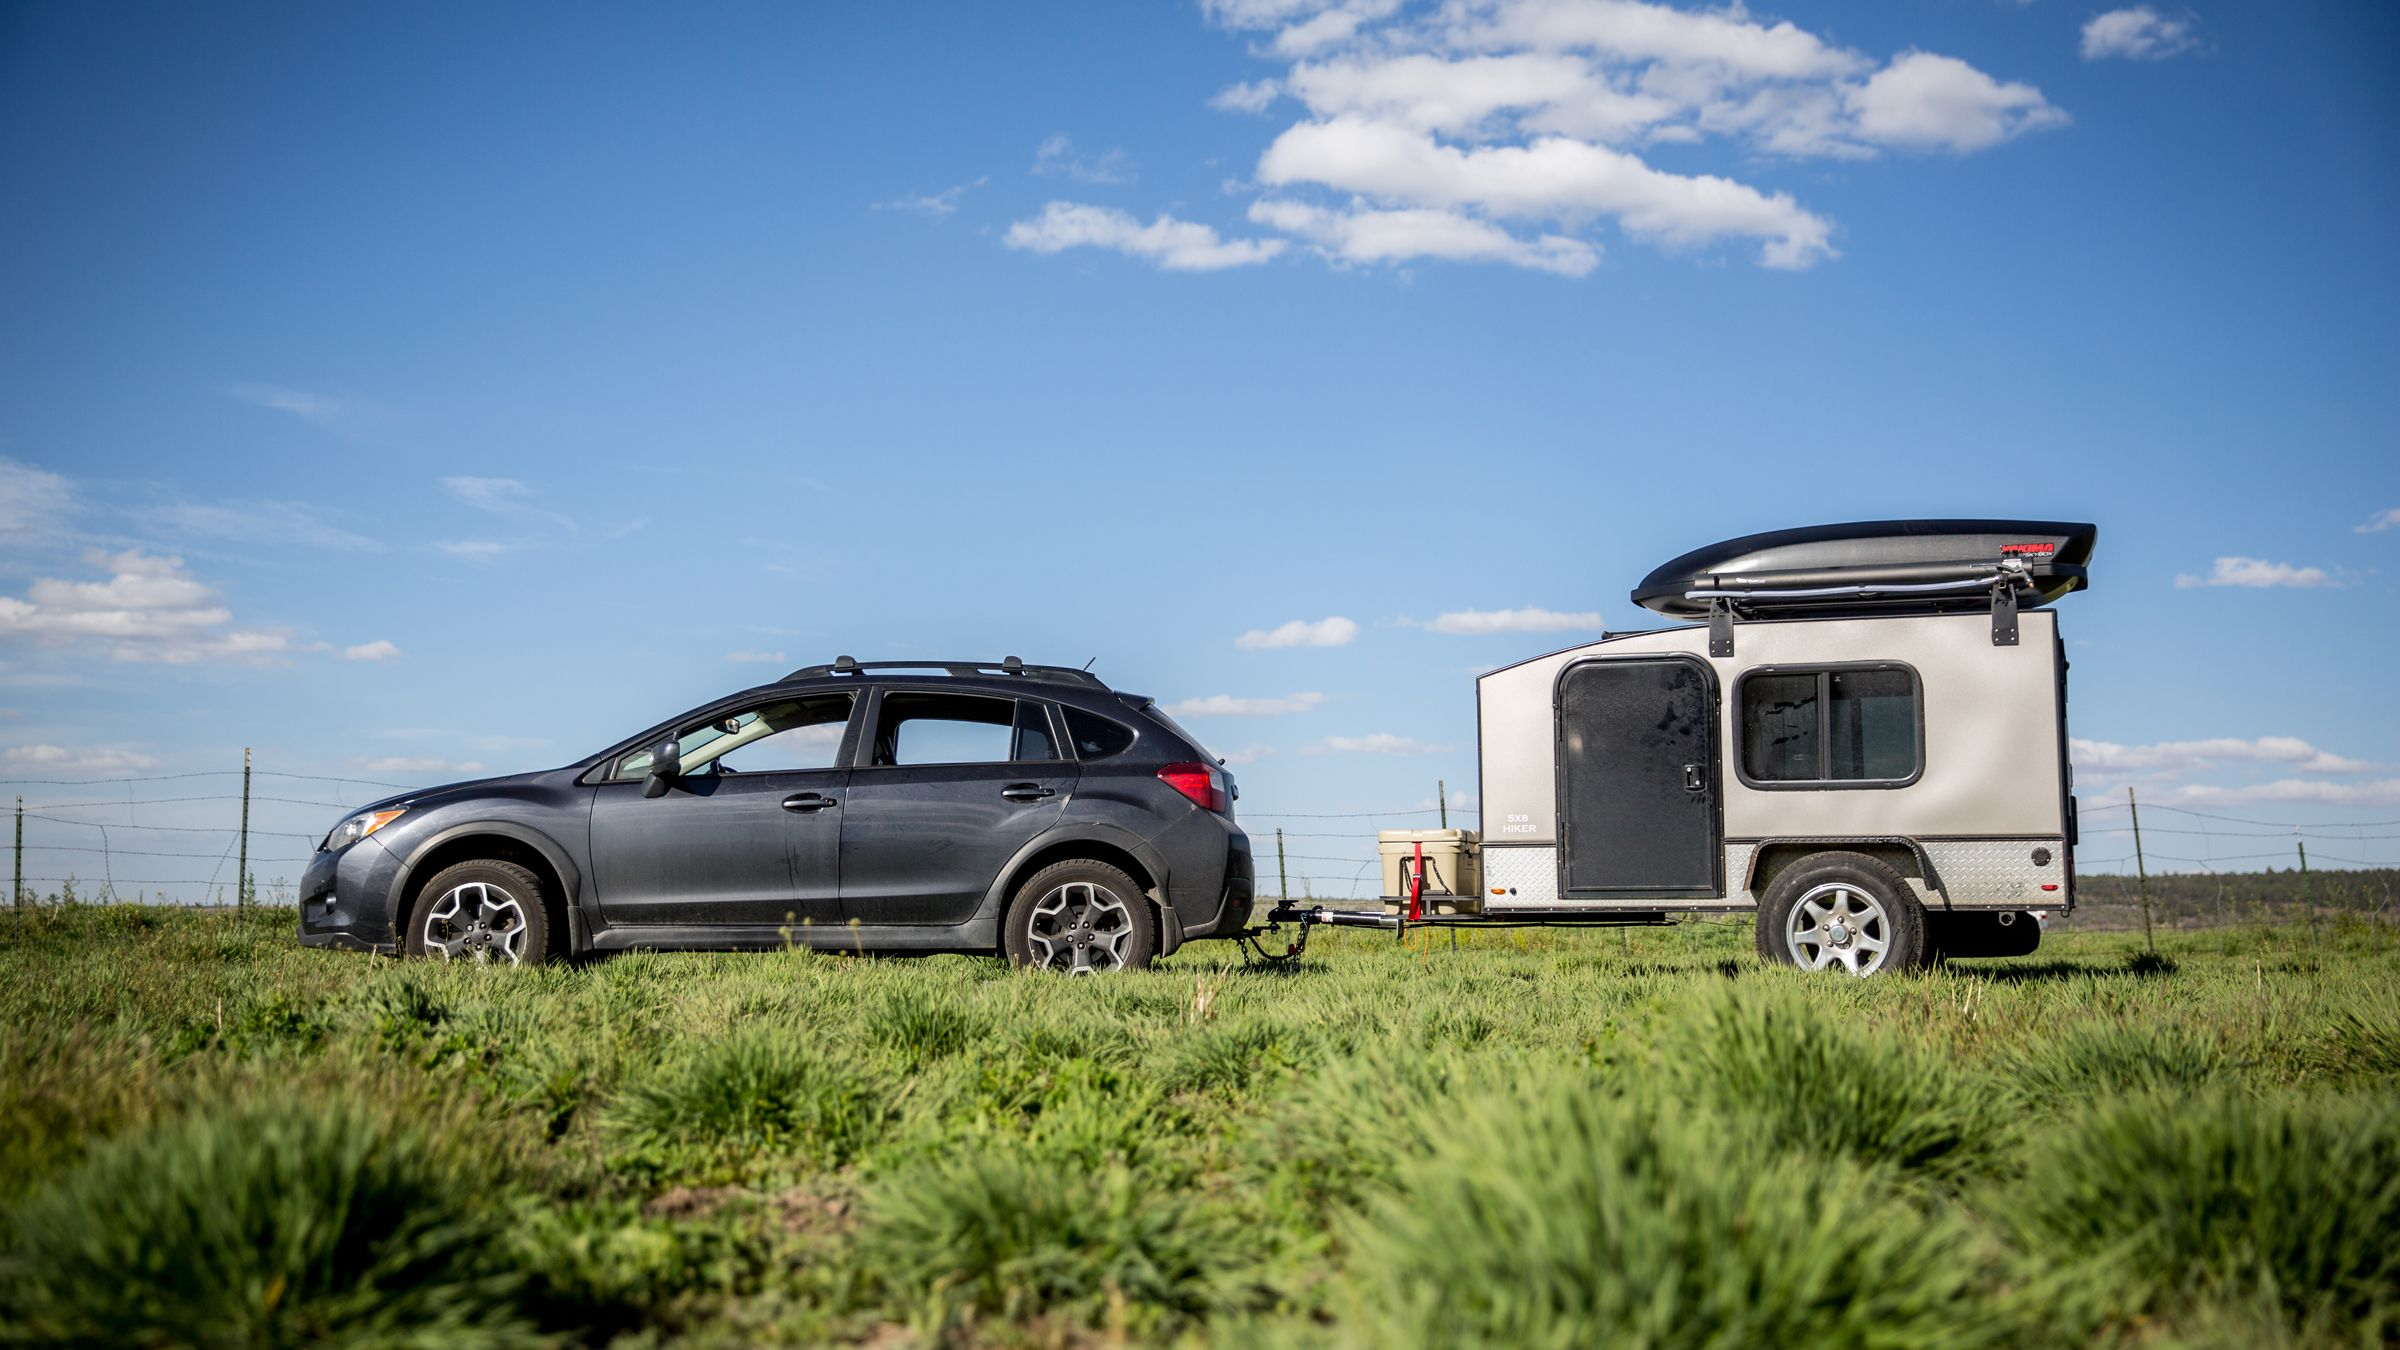 The 10 Coolest Vehicles We Saw at Overland Expo West